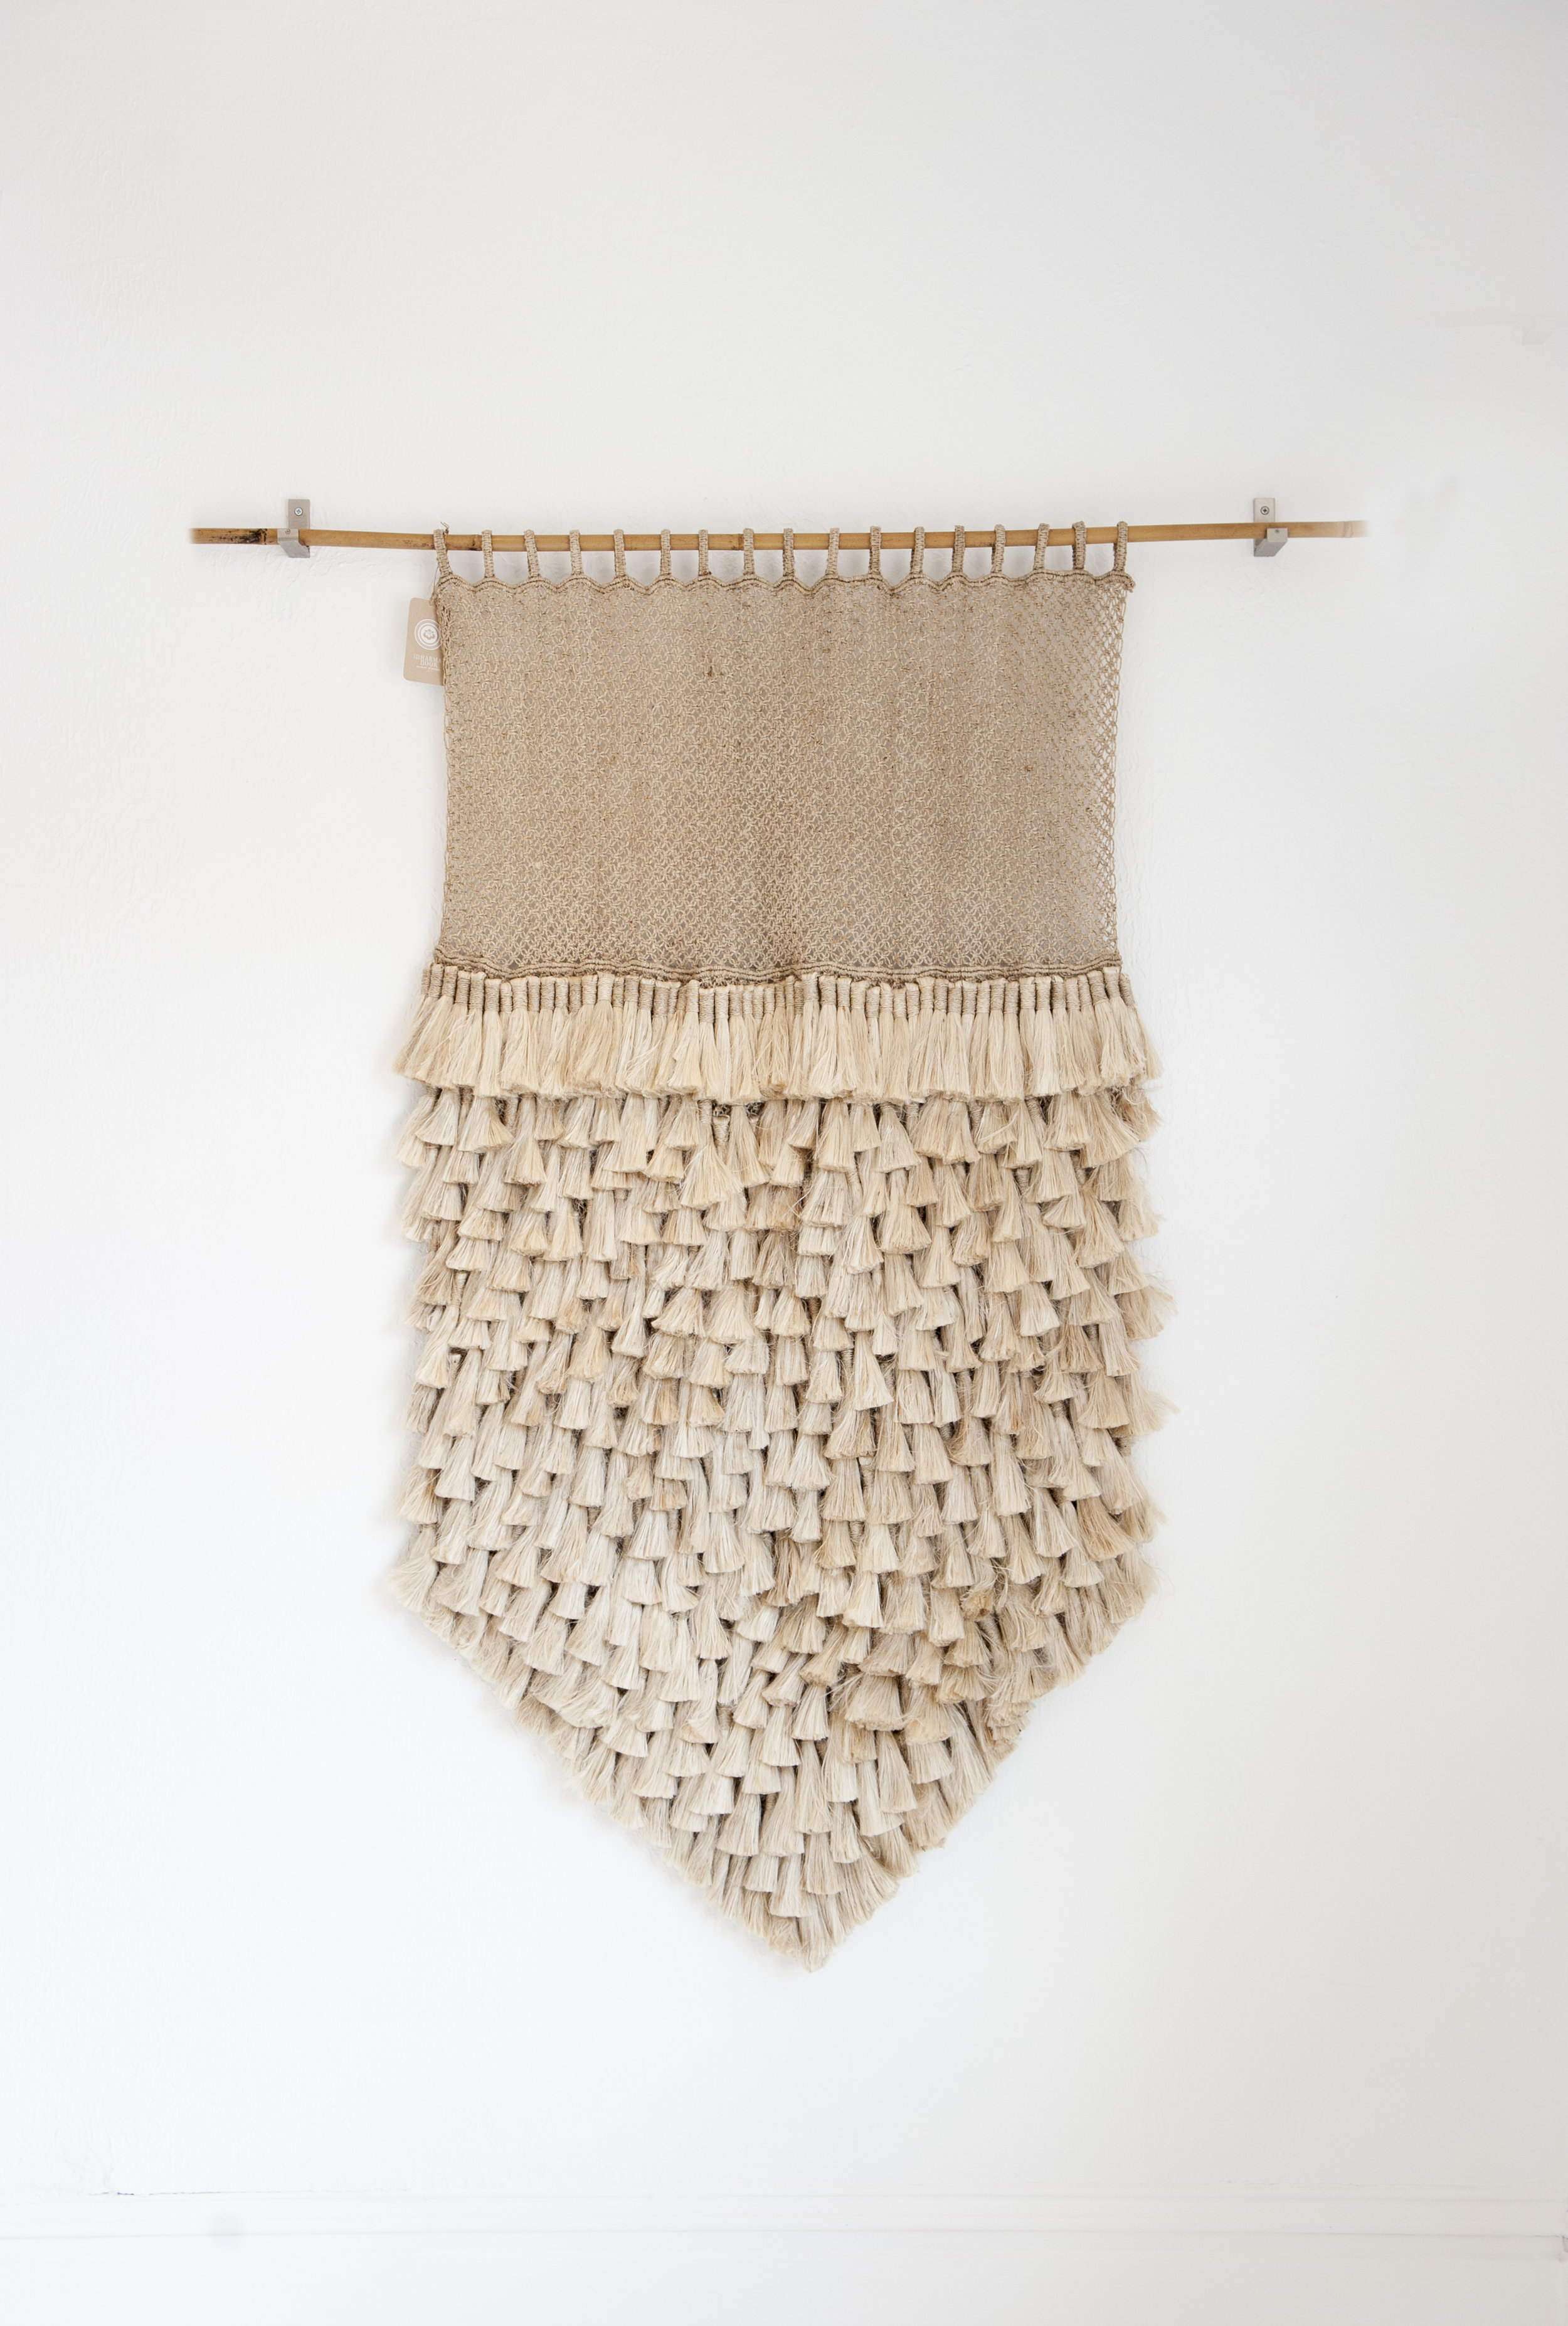 "Large Natural Jute Macrame Wall Hanging $500  dimensions: 57"" high x 40"" wide"